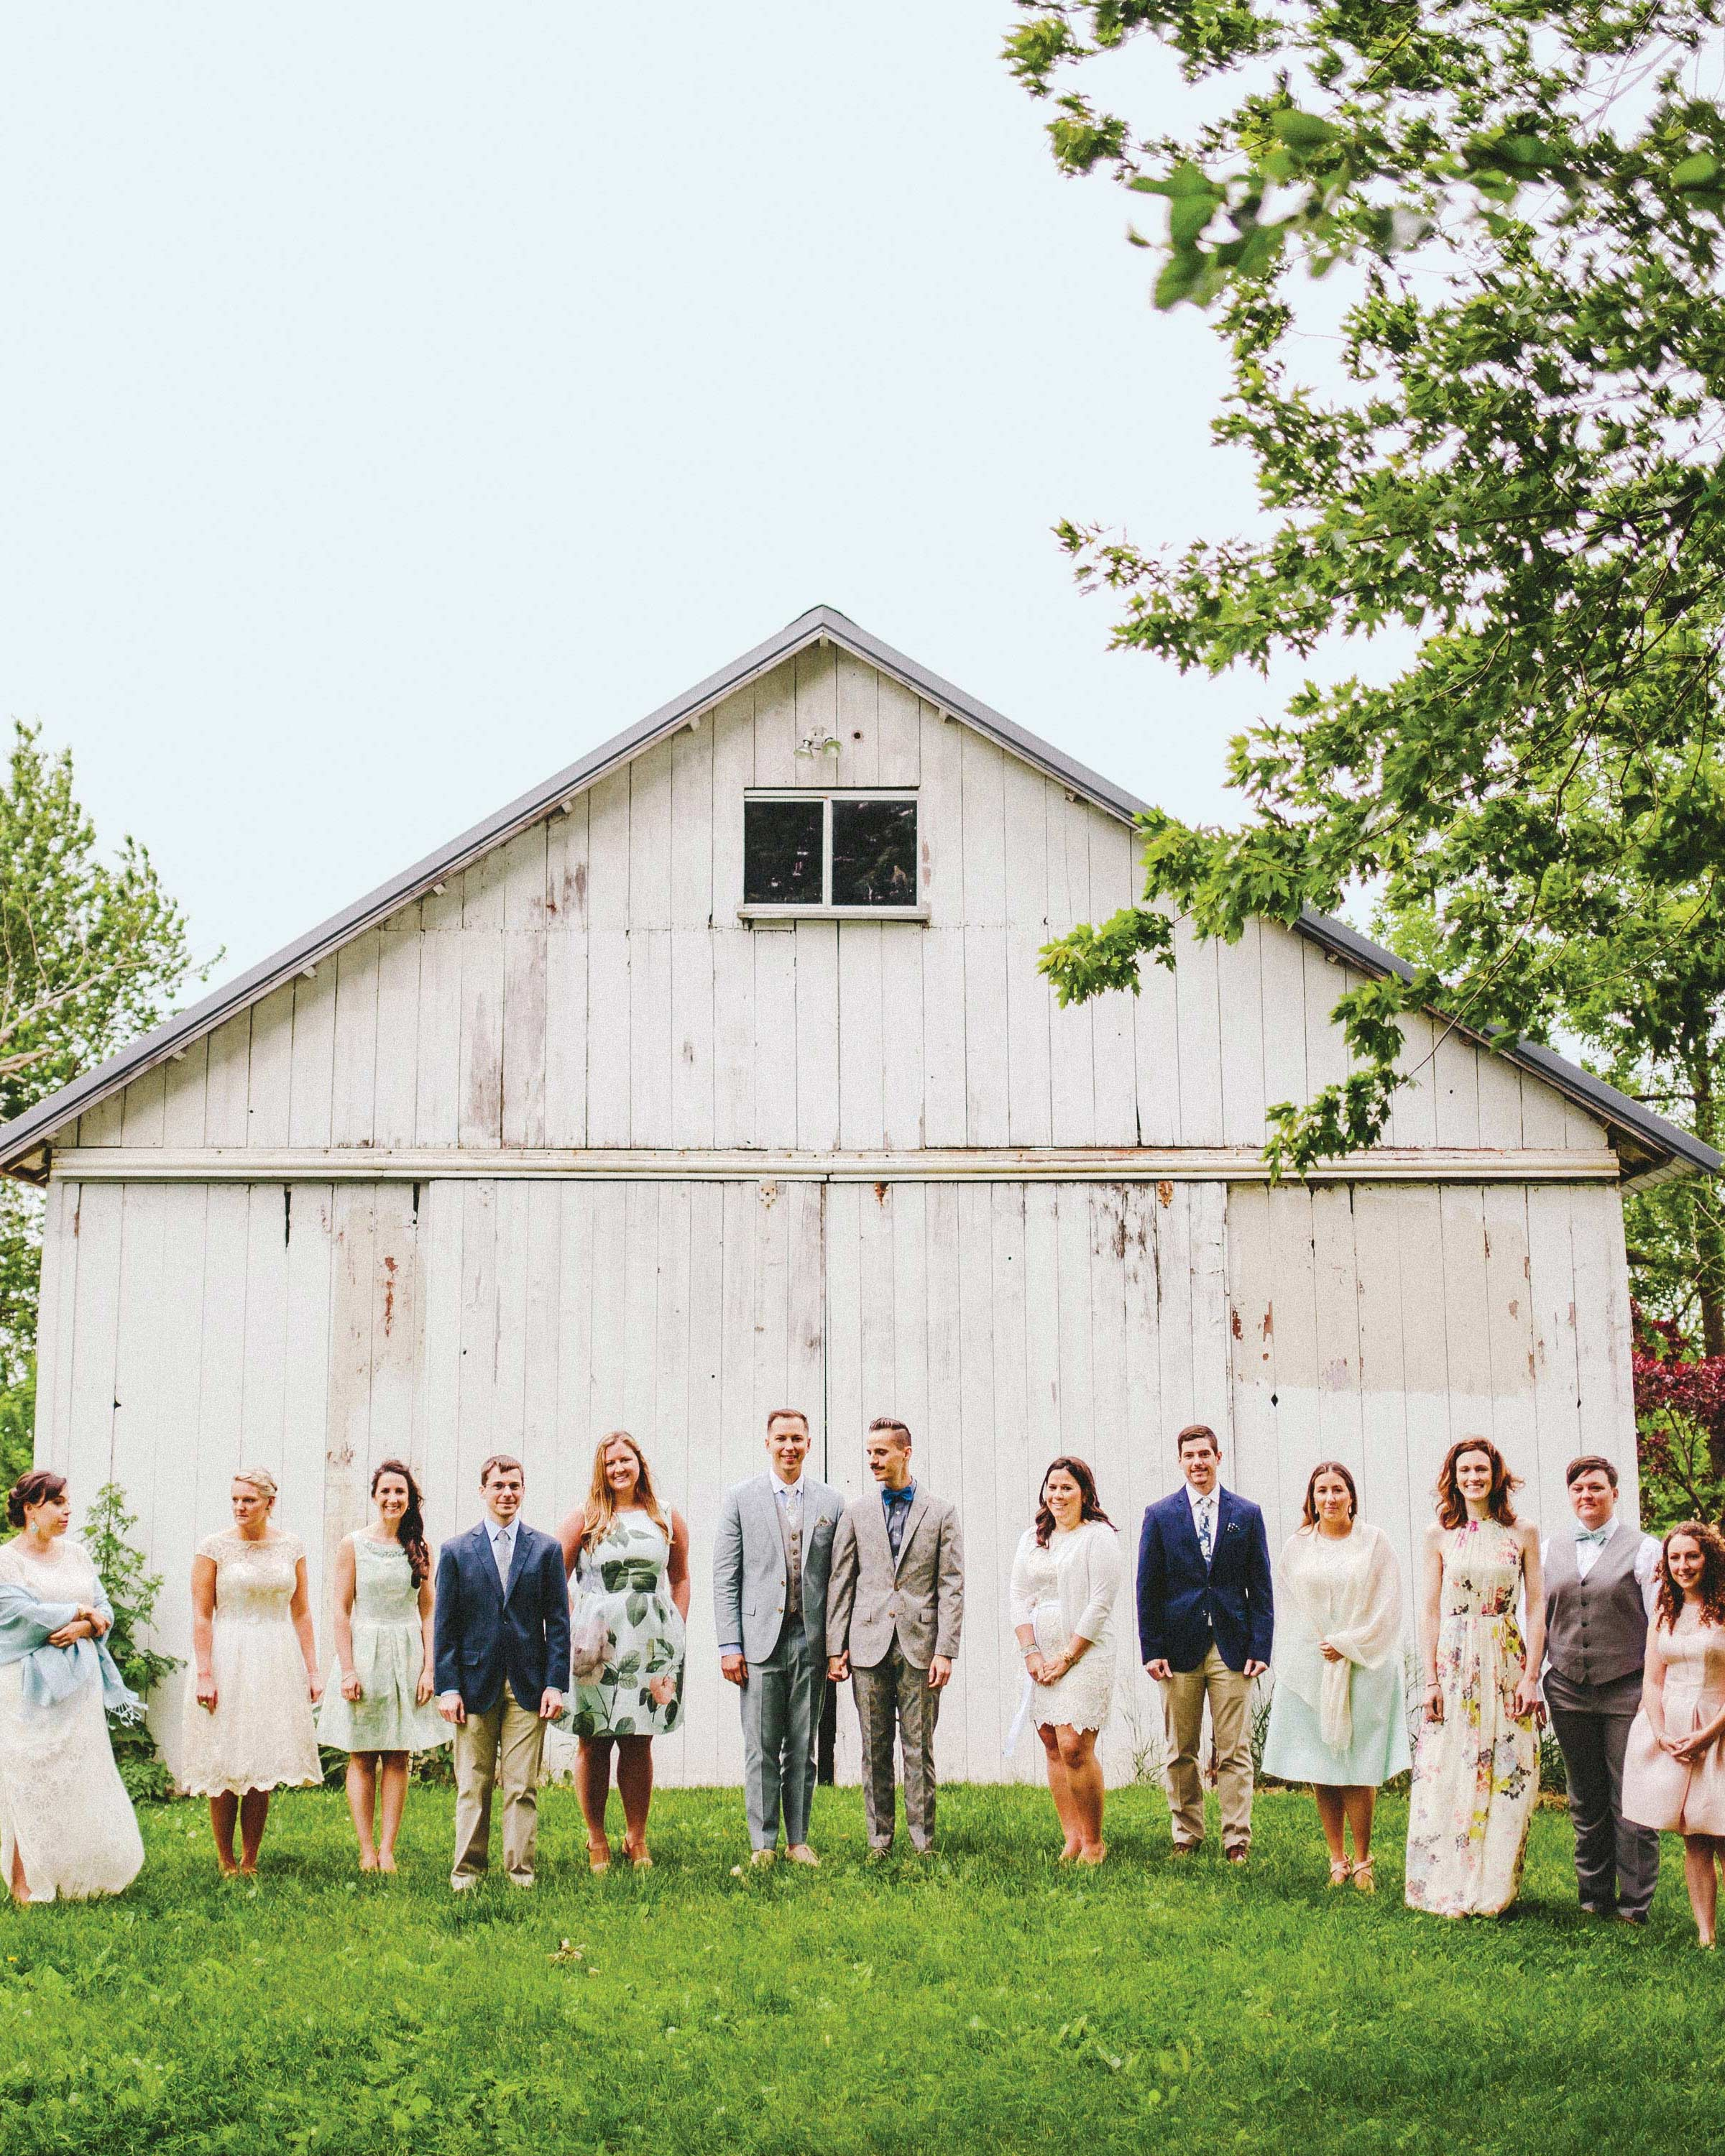 chase-drew-real-wedding-party-portrait.jpg